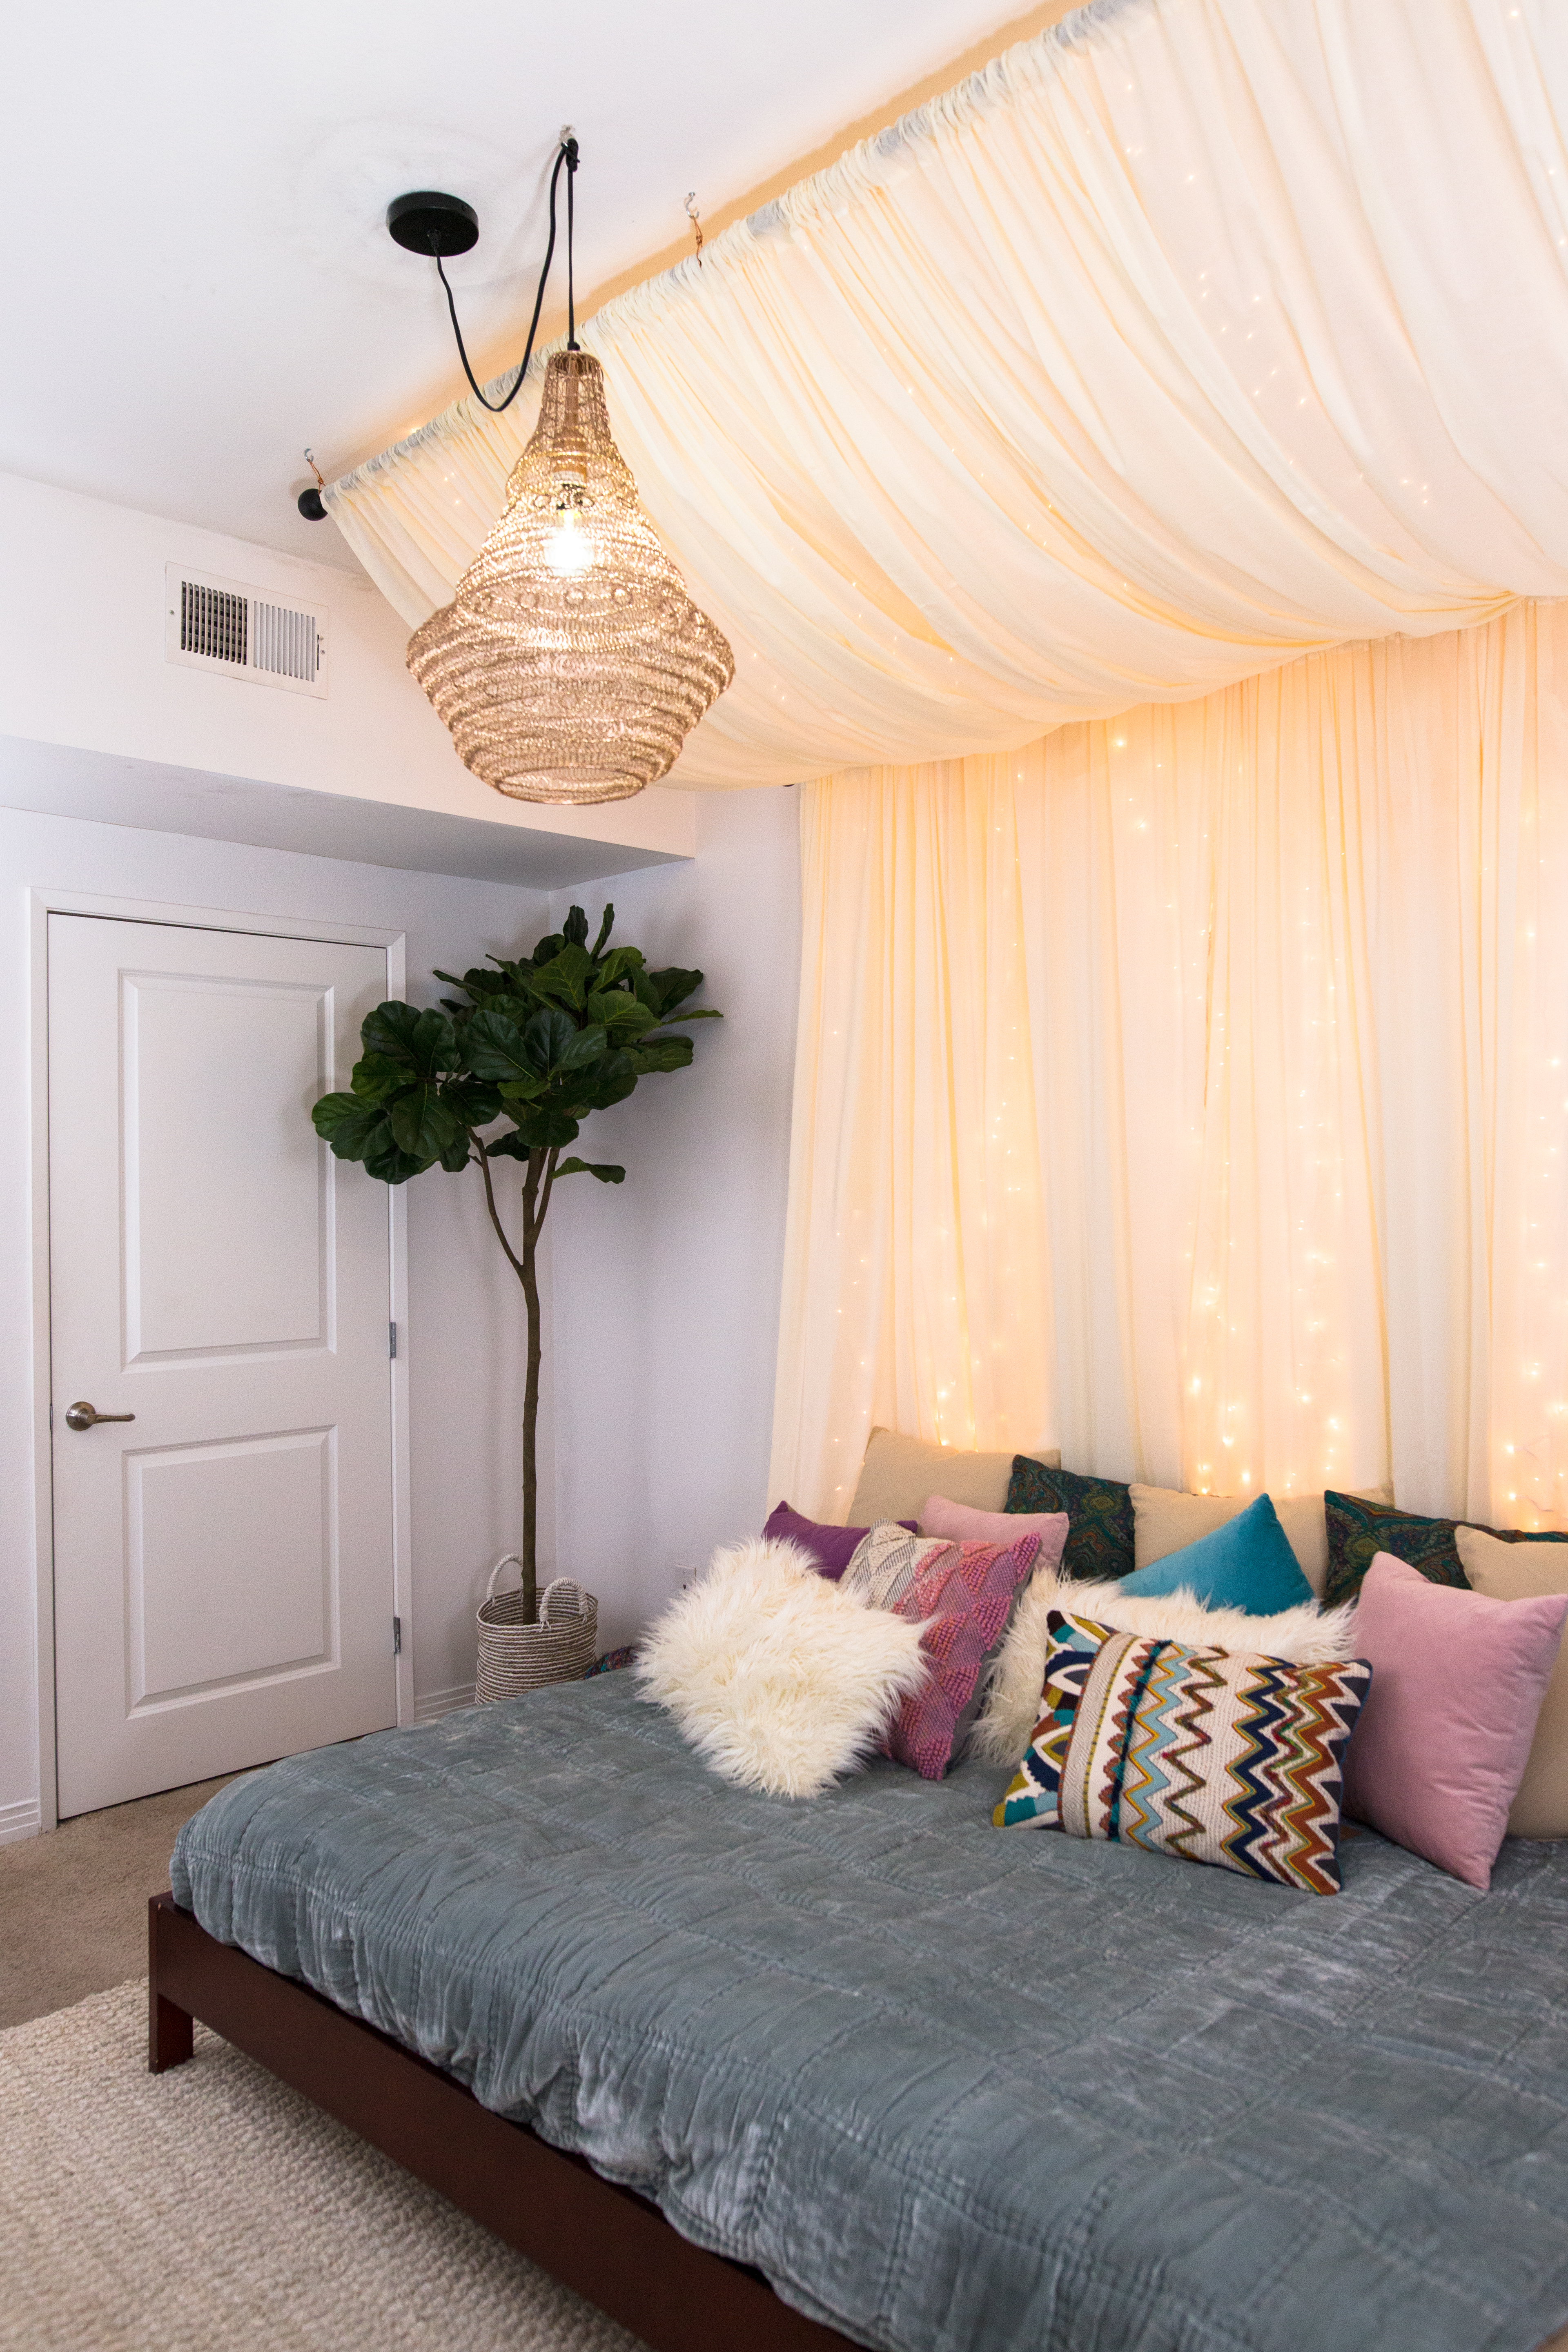 inspiration from pinterest - Fairy Lights Bedroom